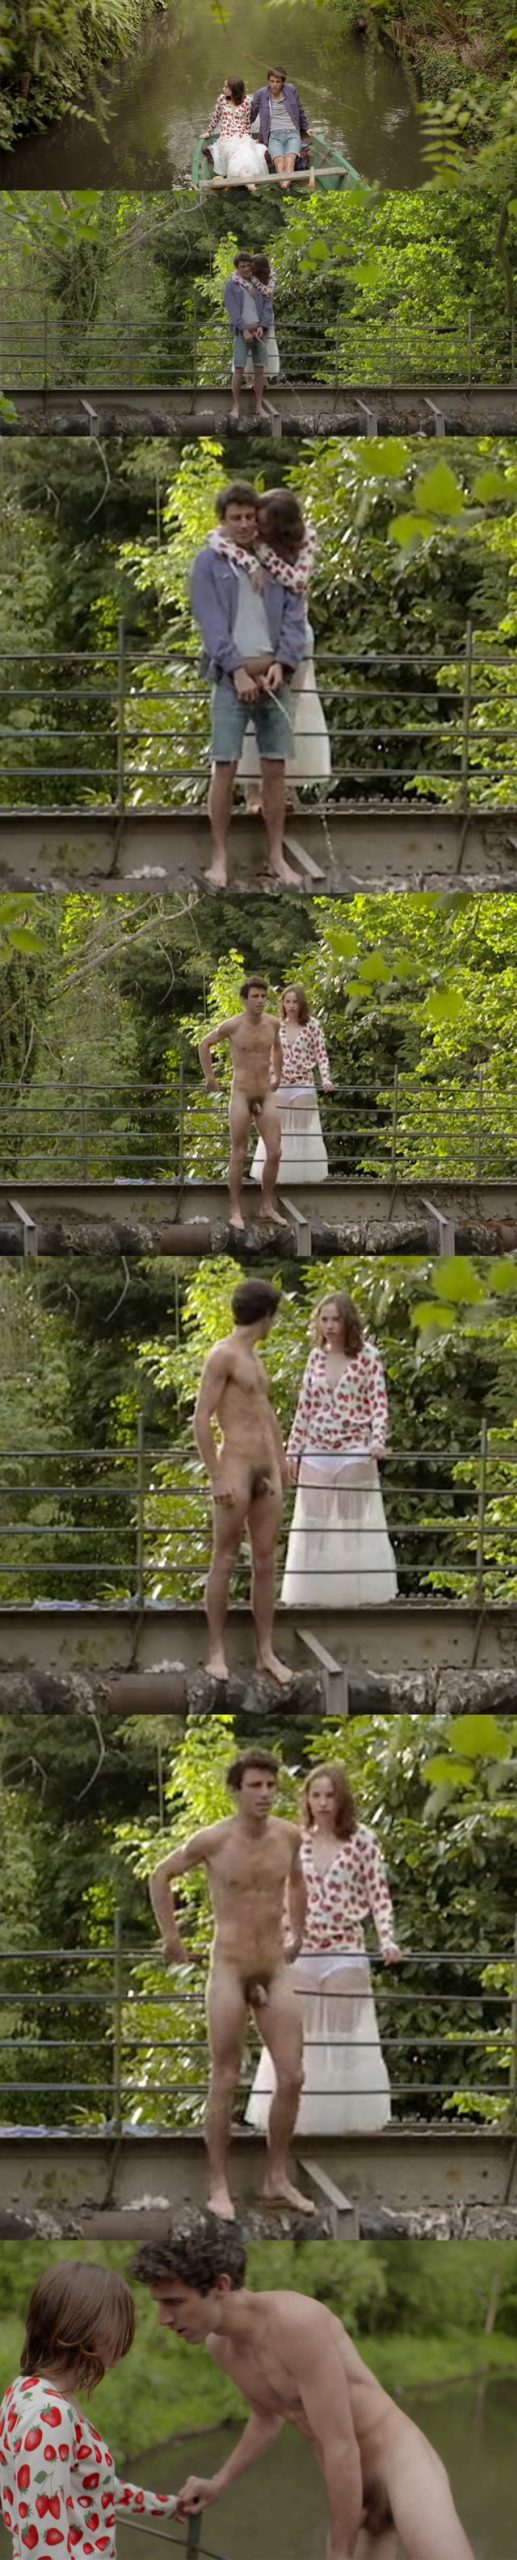 male actor peeing in french movie